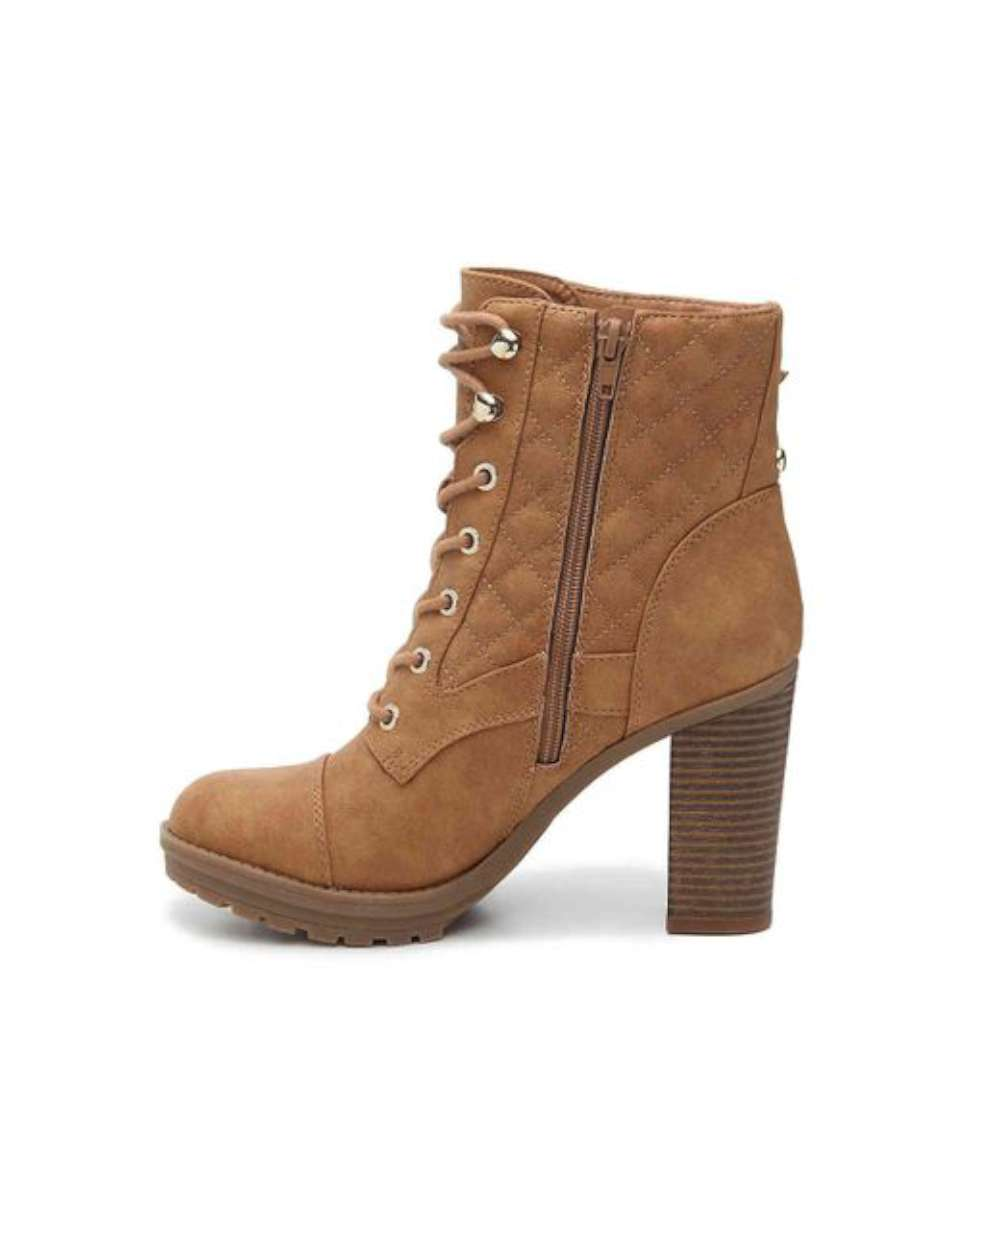 G by Guess femmes Gift Closed Toe Ankle Fashion bottes